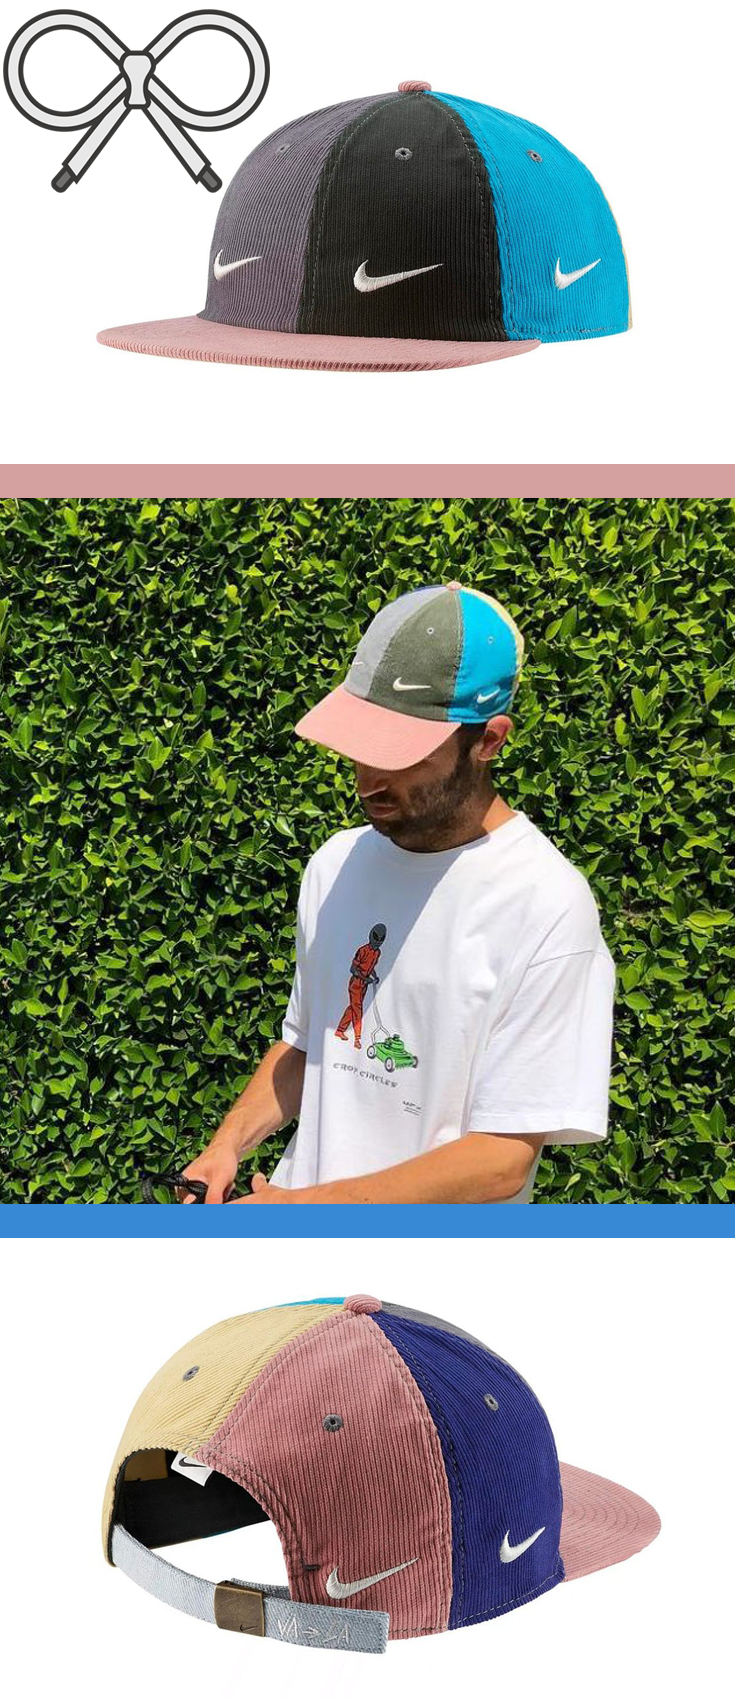 09b6a4774c Multi-colored Nike hat designed by Sean Wotherspoon. | Hats & Other ...